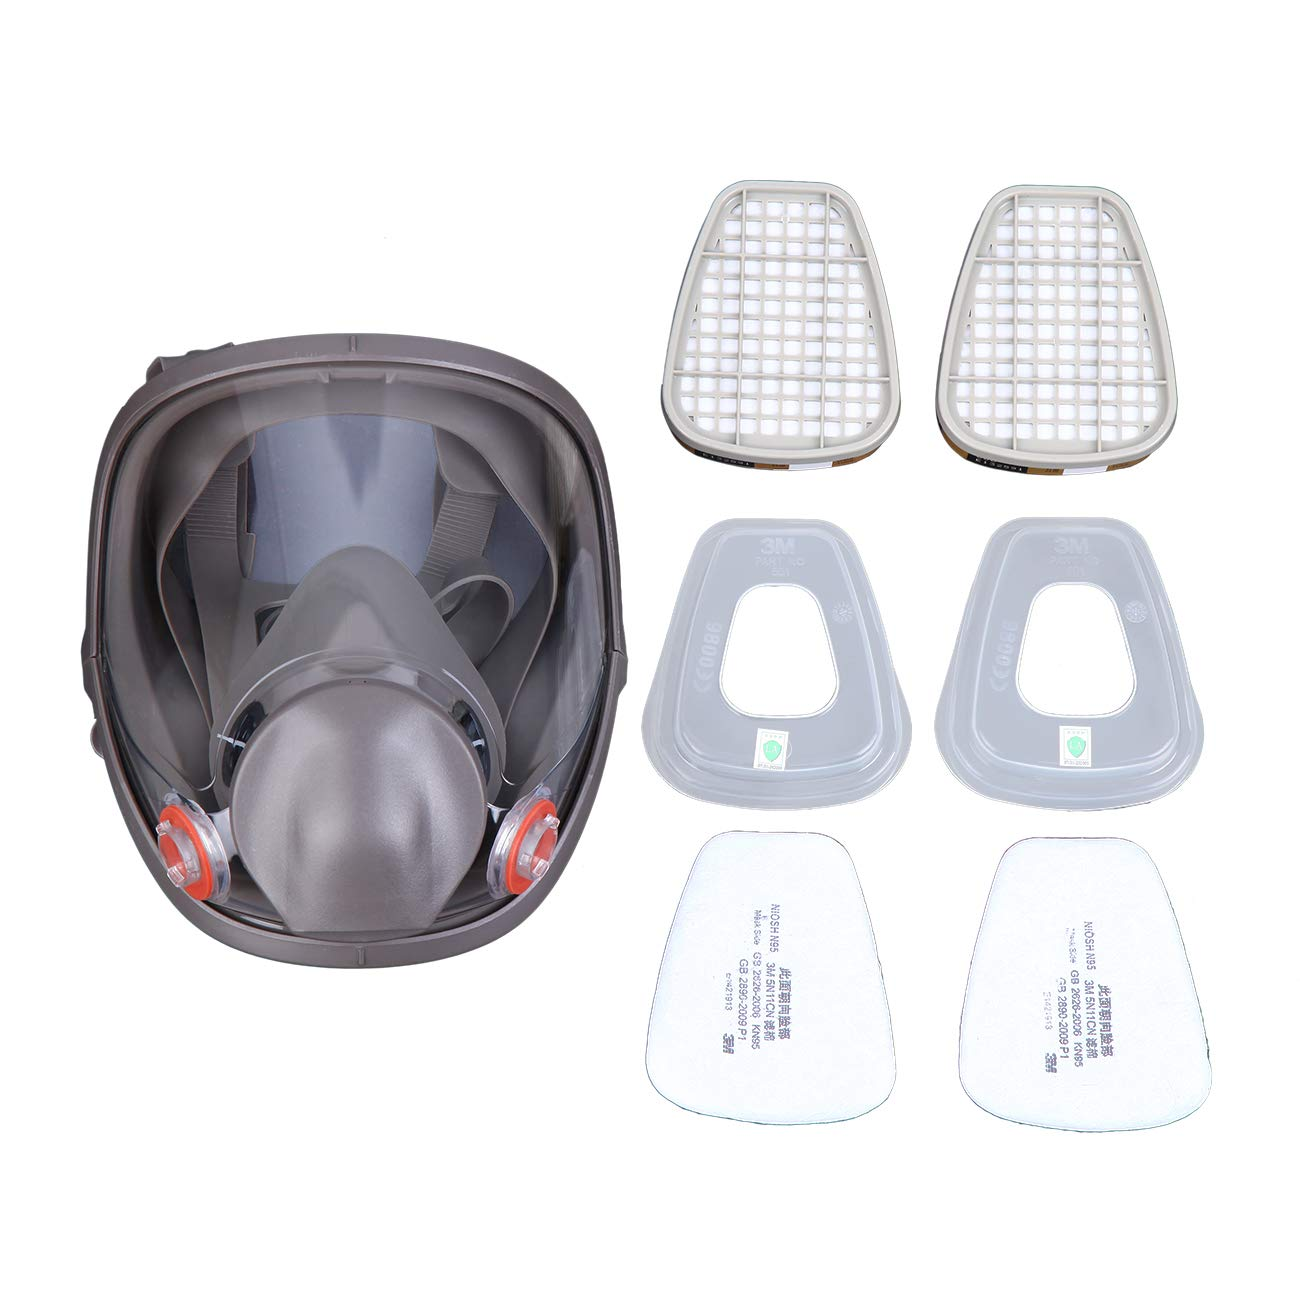 Yunge Full Face Respirator Gas Mask For 6800 Painting Spraying(15 in 1)Facepiece Respirator- Industrial Grade Quality by YungeEquipmentUS (Image #8)